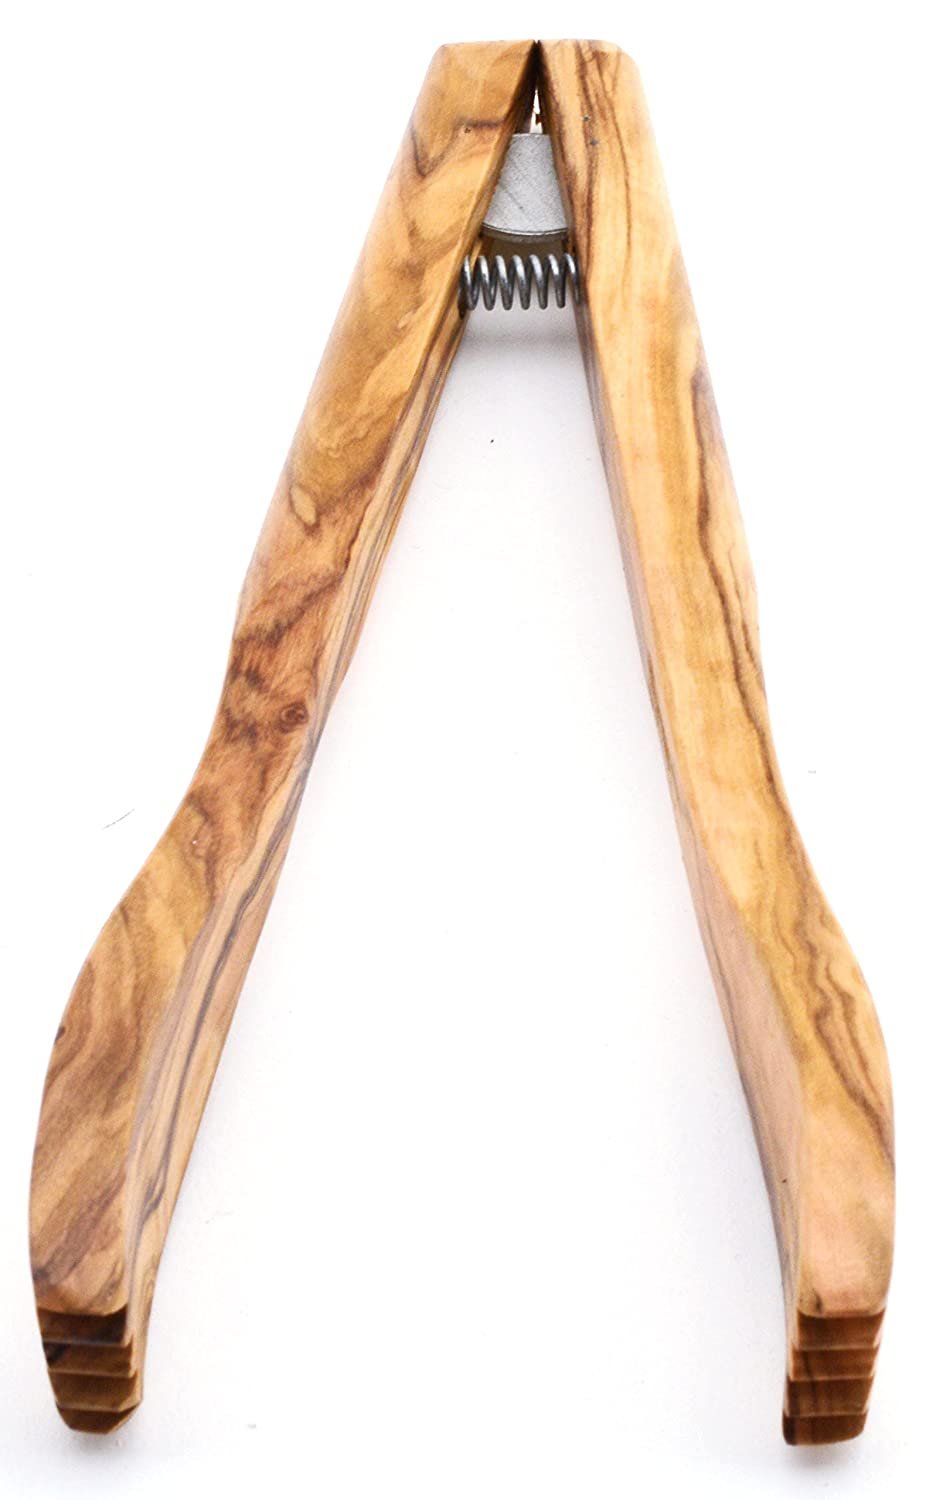 5,71 x 5,71 x 1,57 ART ESCUDELLERS Olive Wood Meat Mallet//Meat Accessories Handmade